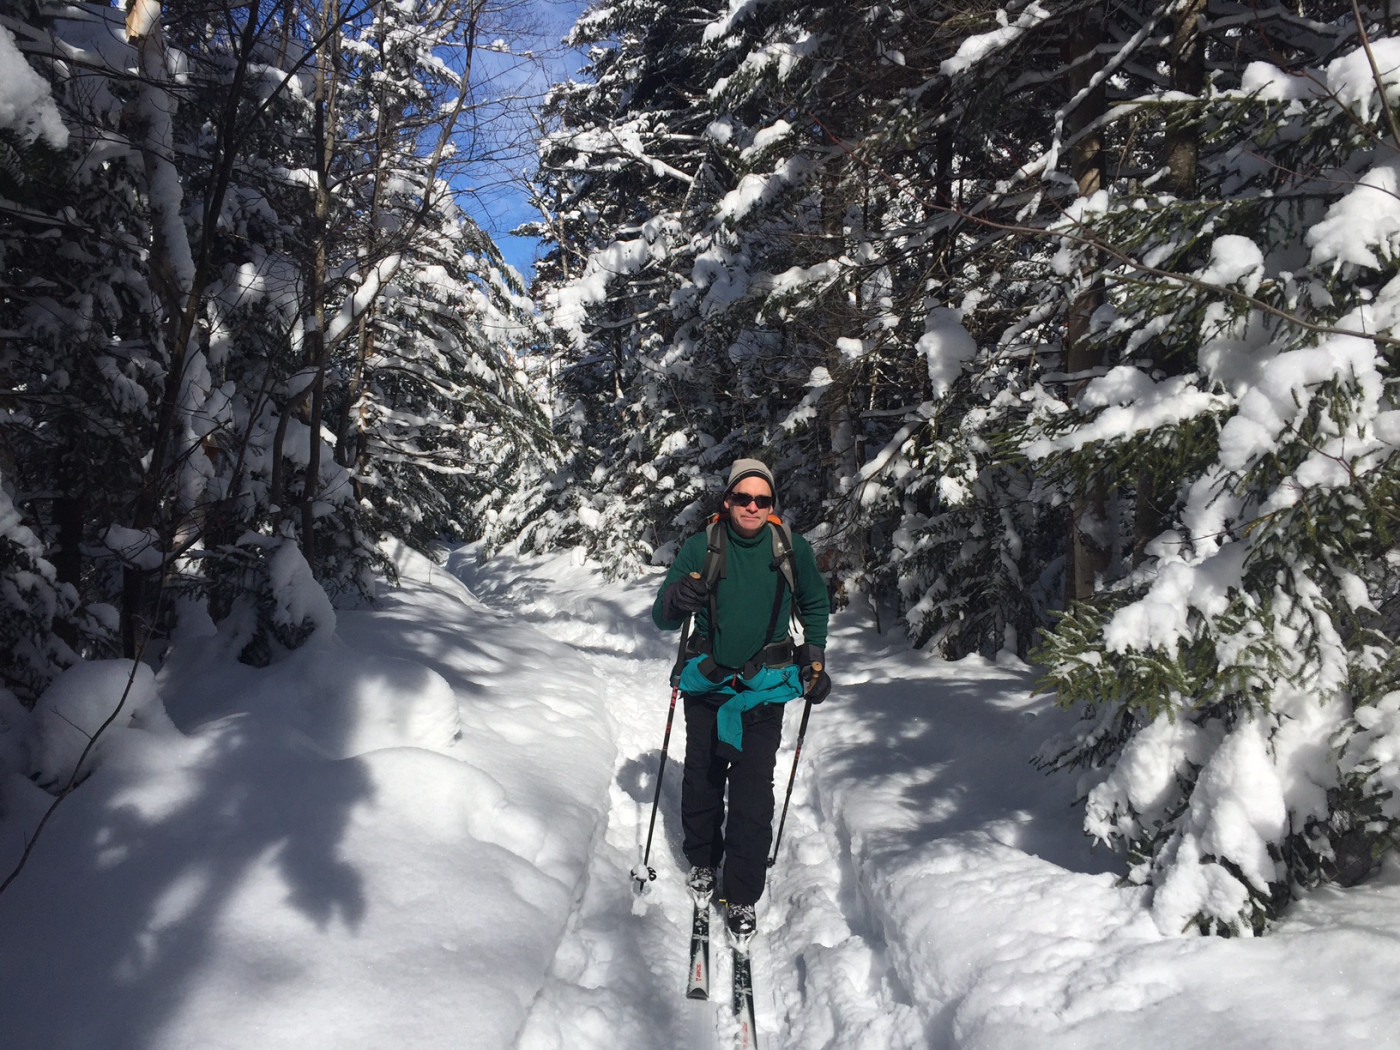 Cross-country skier on wooded trail with heavy snow